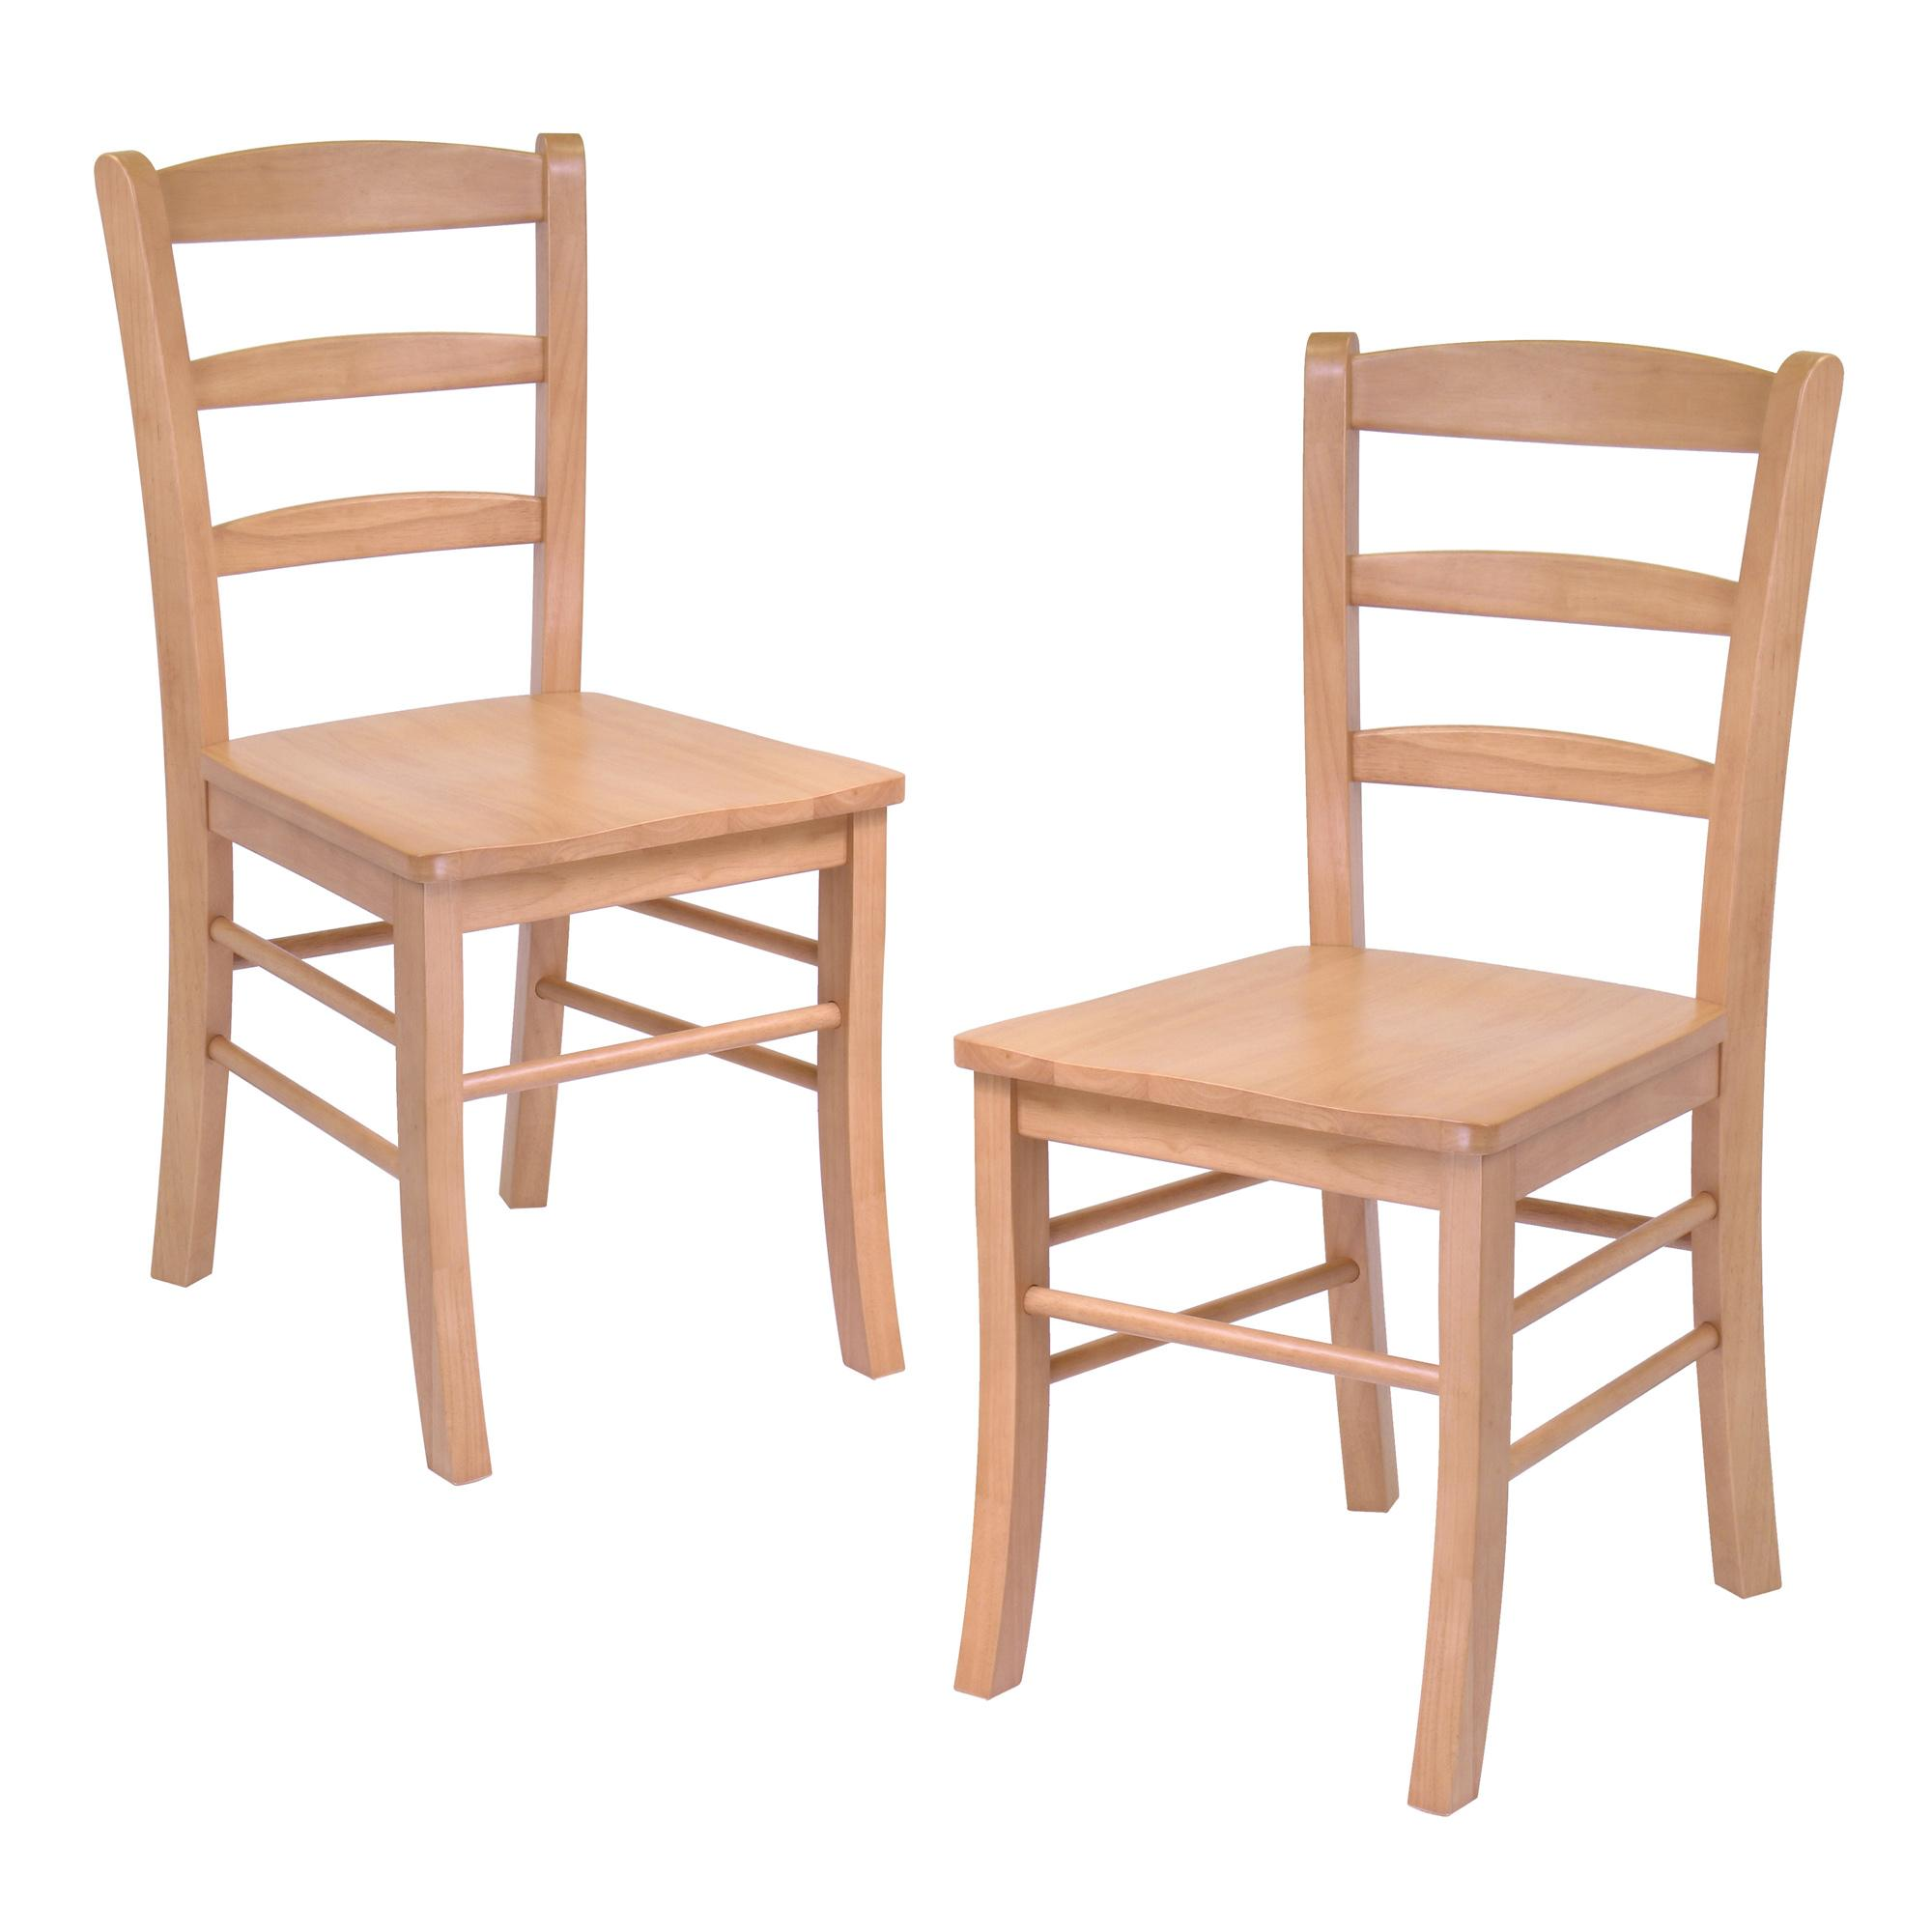 Winsome hannah dining wood side chairs in light oak finish set of 2 by oj commerce 34232a Wooden dining table and chairs